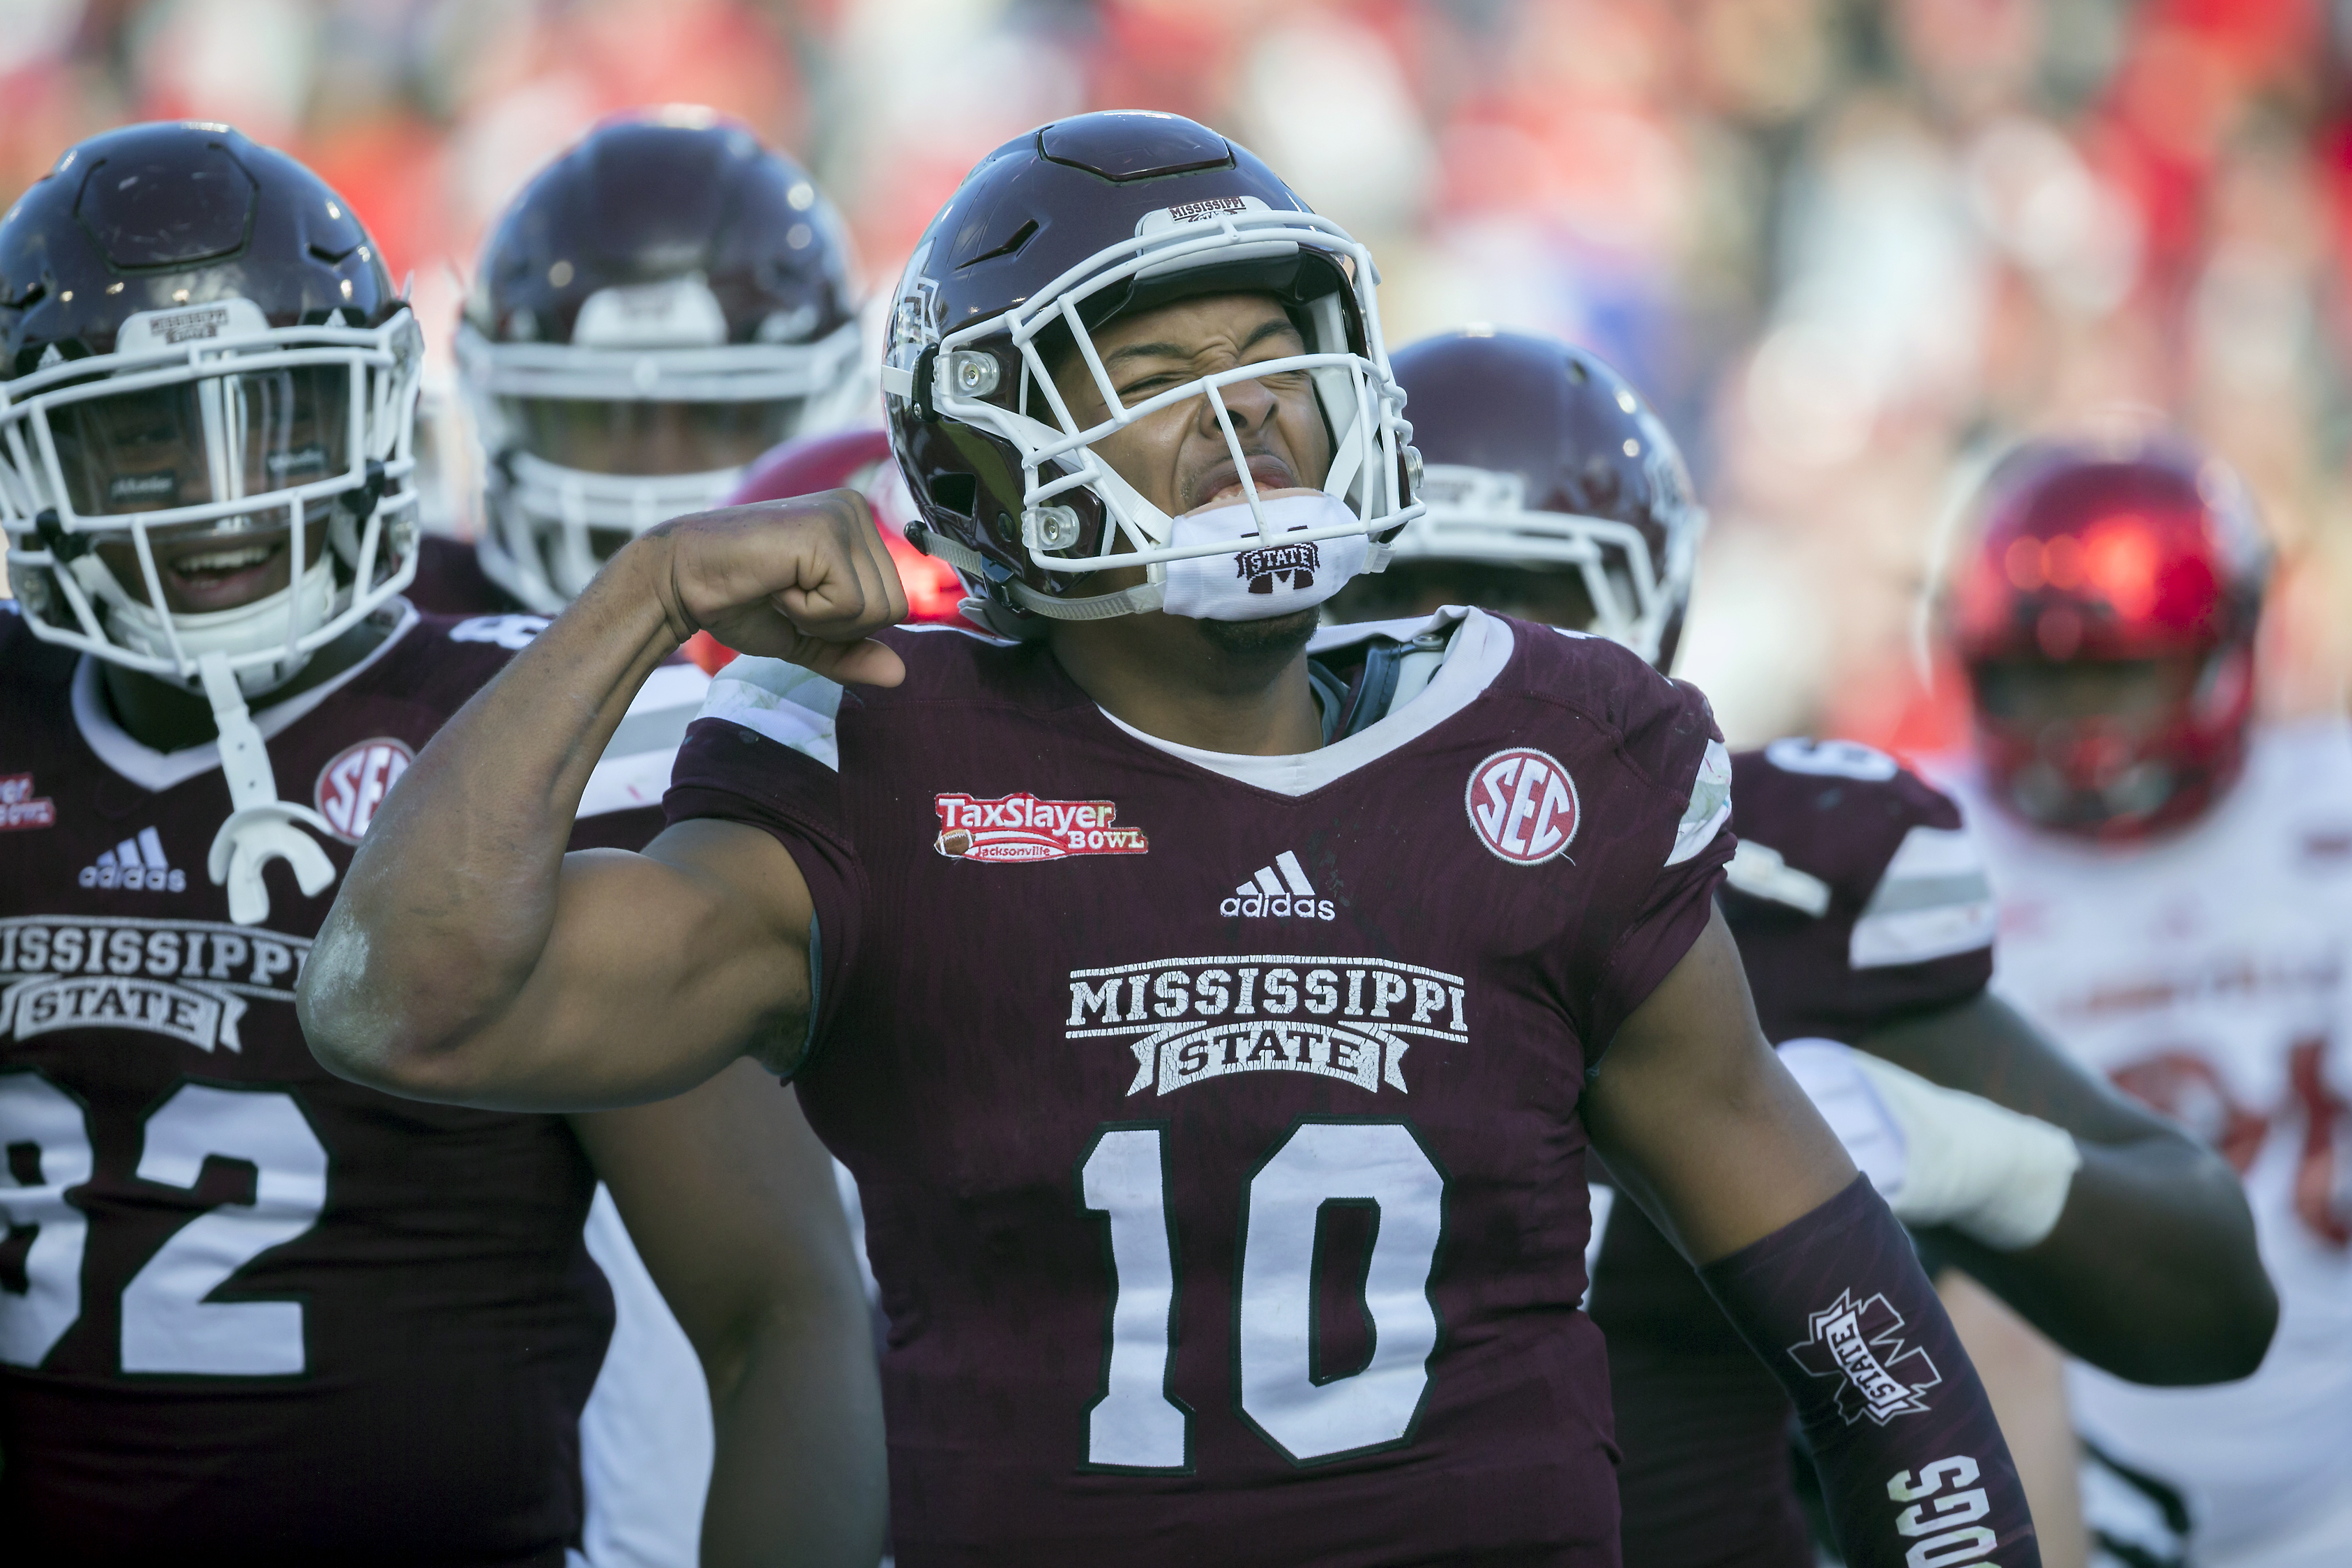 Mississippi State QB set to transfer after losing QB competition